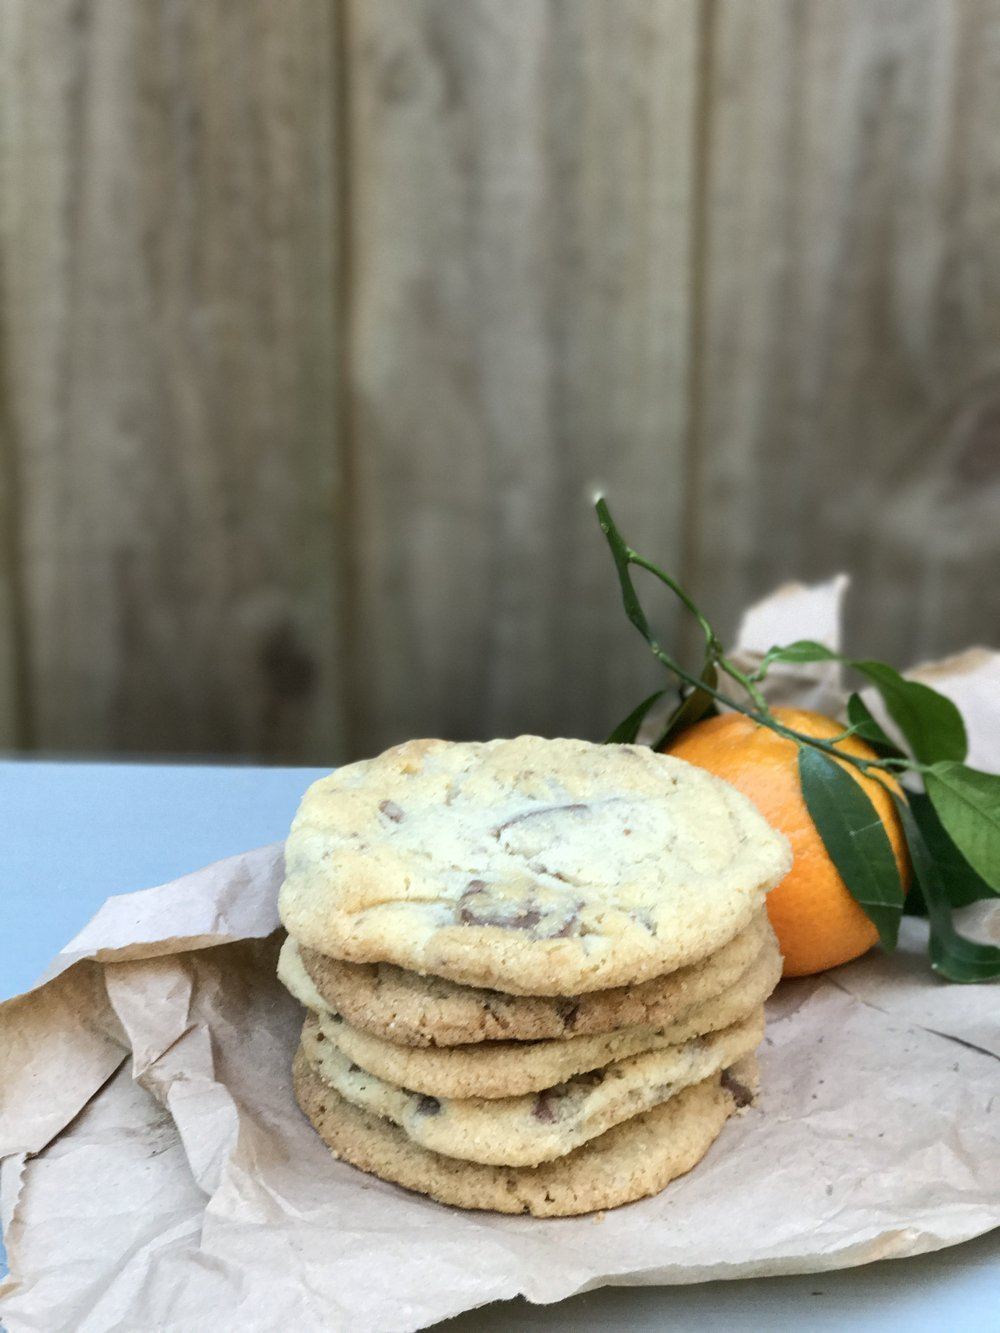 Pile of Terry's chocolate orange cookies on brown paper next to an orange with leaves on it, brown wooden fence in the background